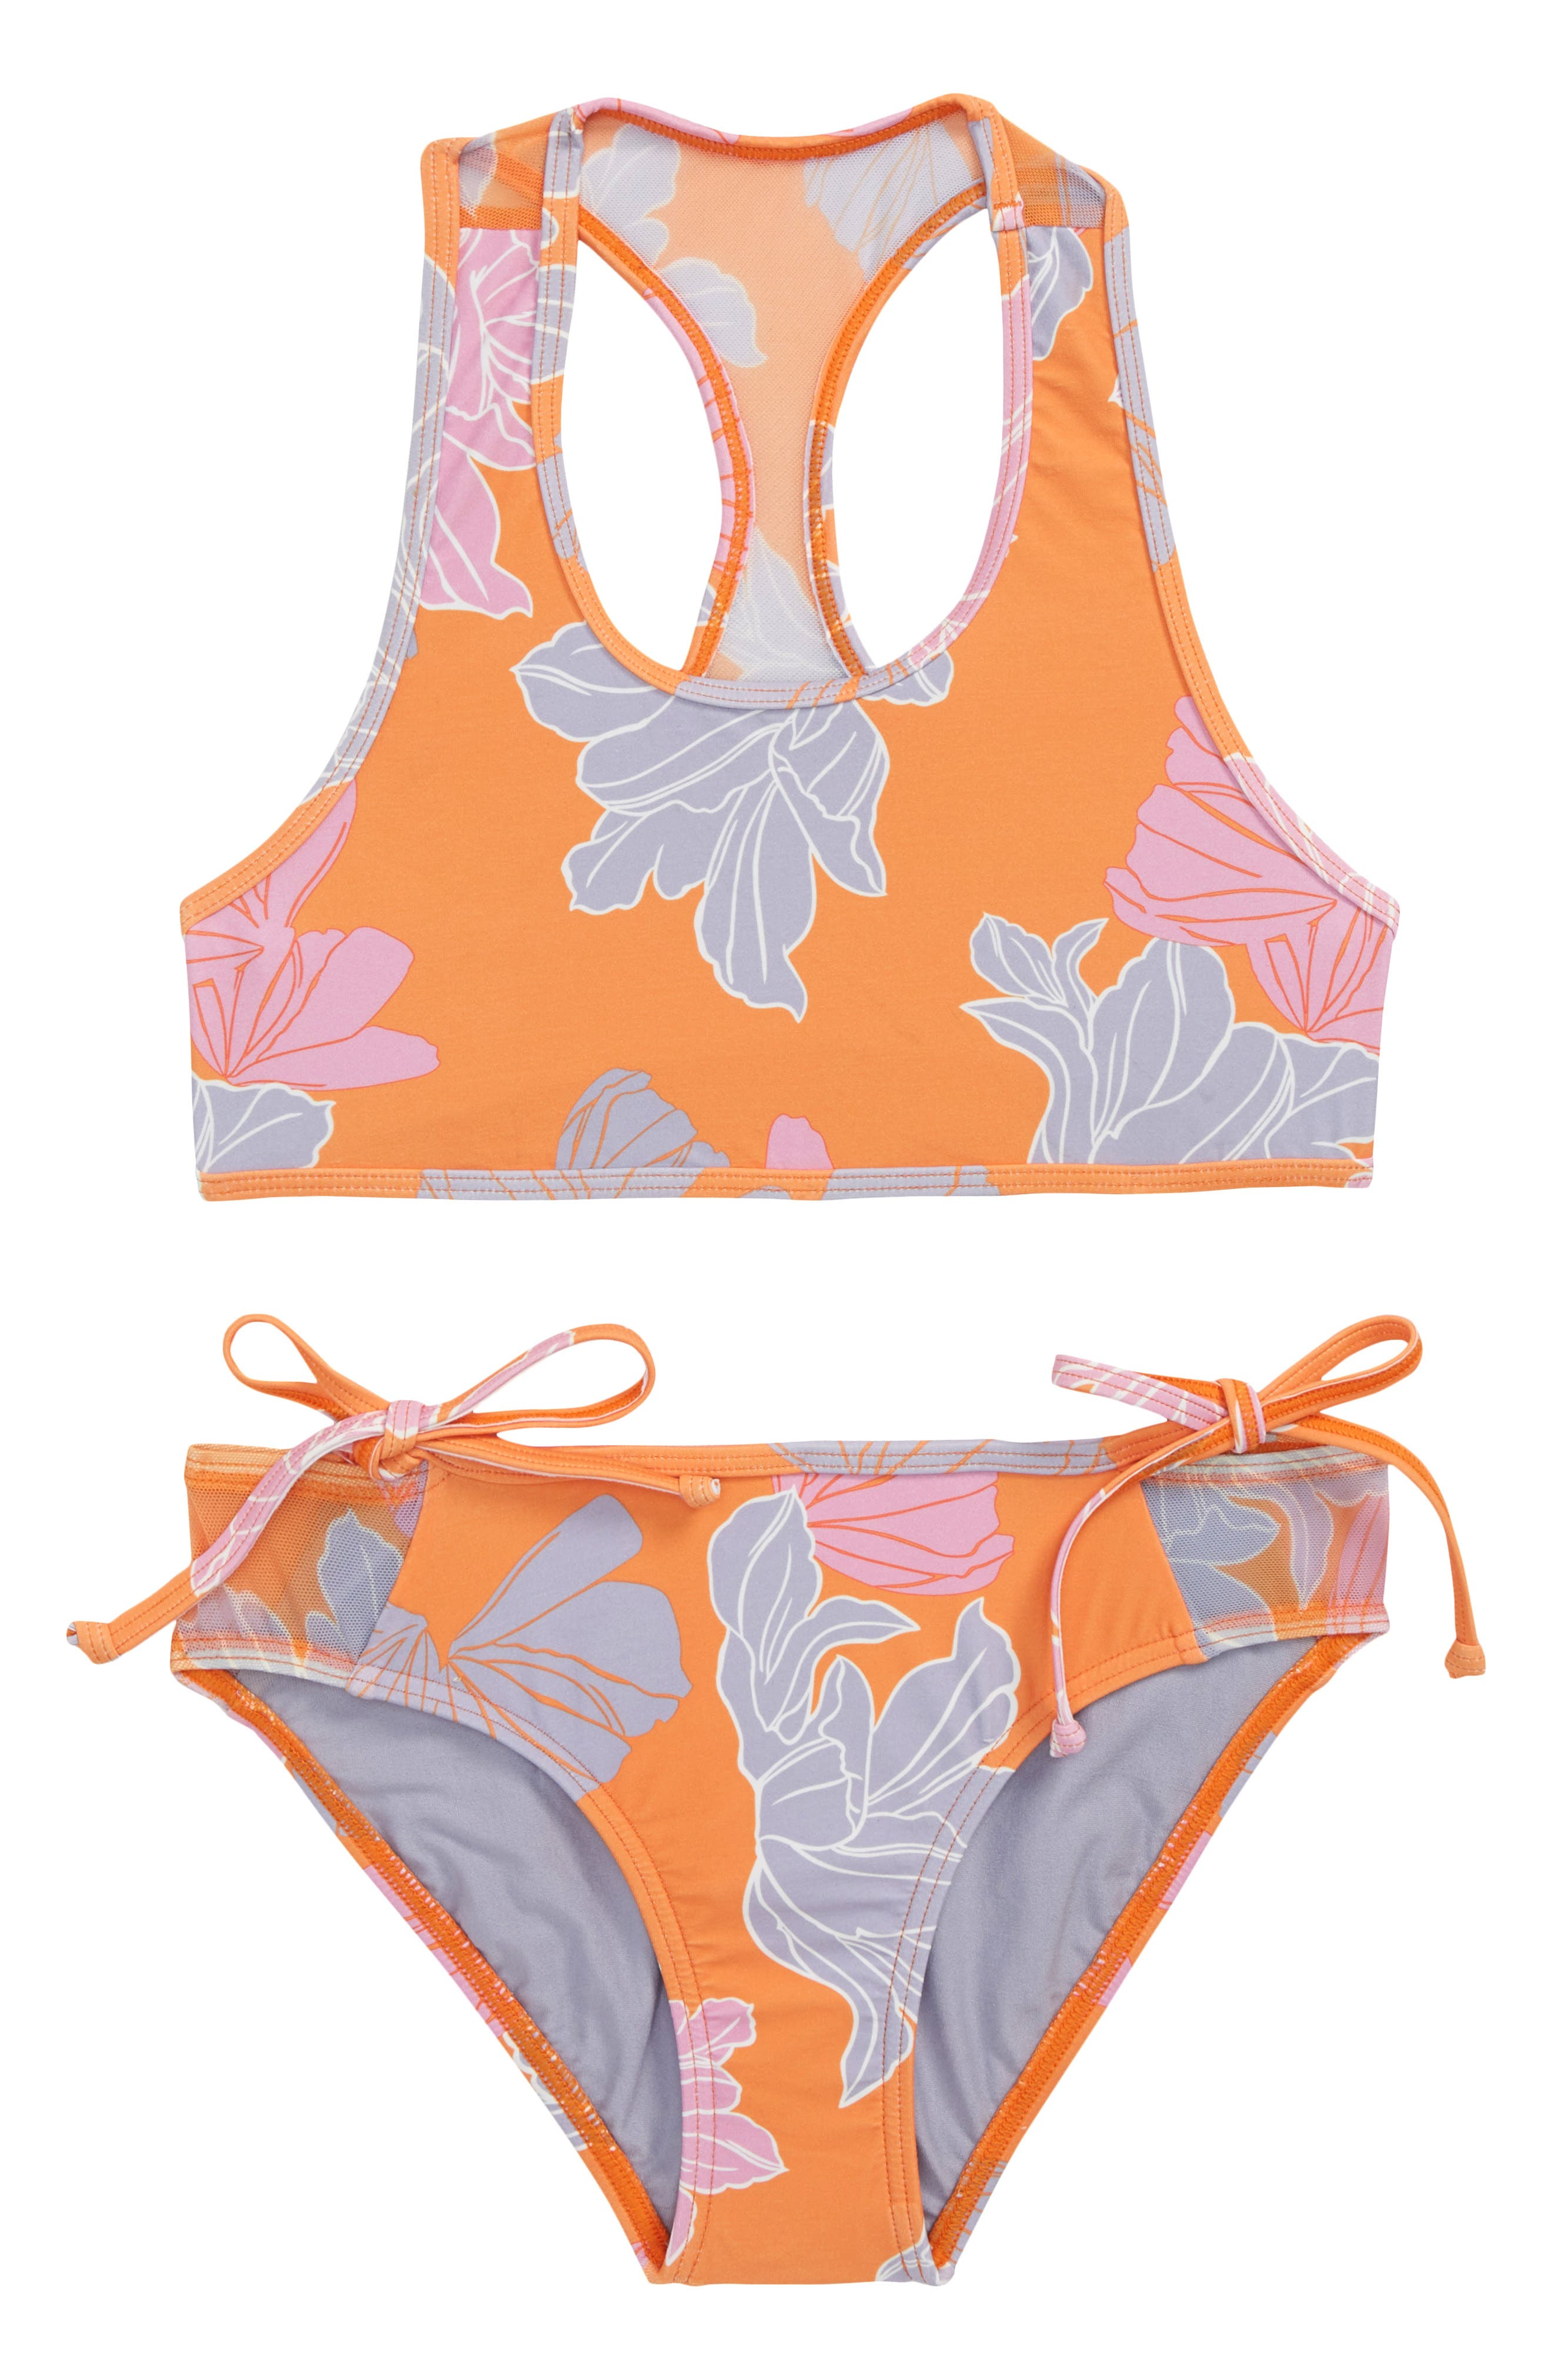 Zilla Floral Two-Piece Swimsuit,                             Main thumbnail 1, color,                             804